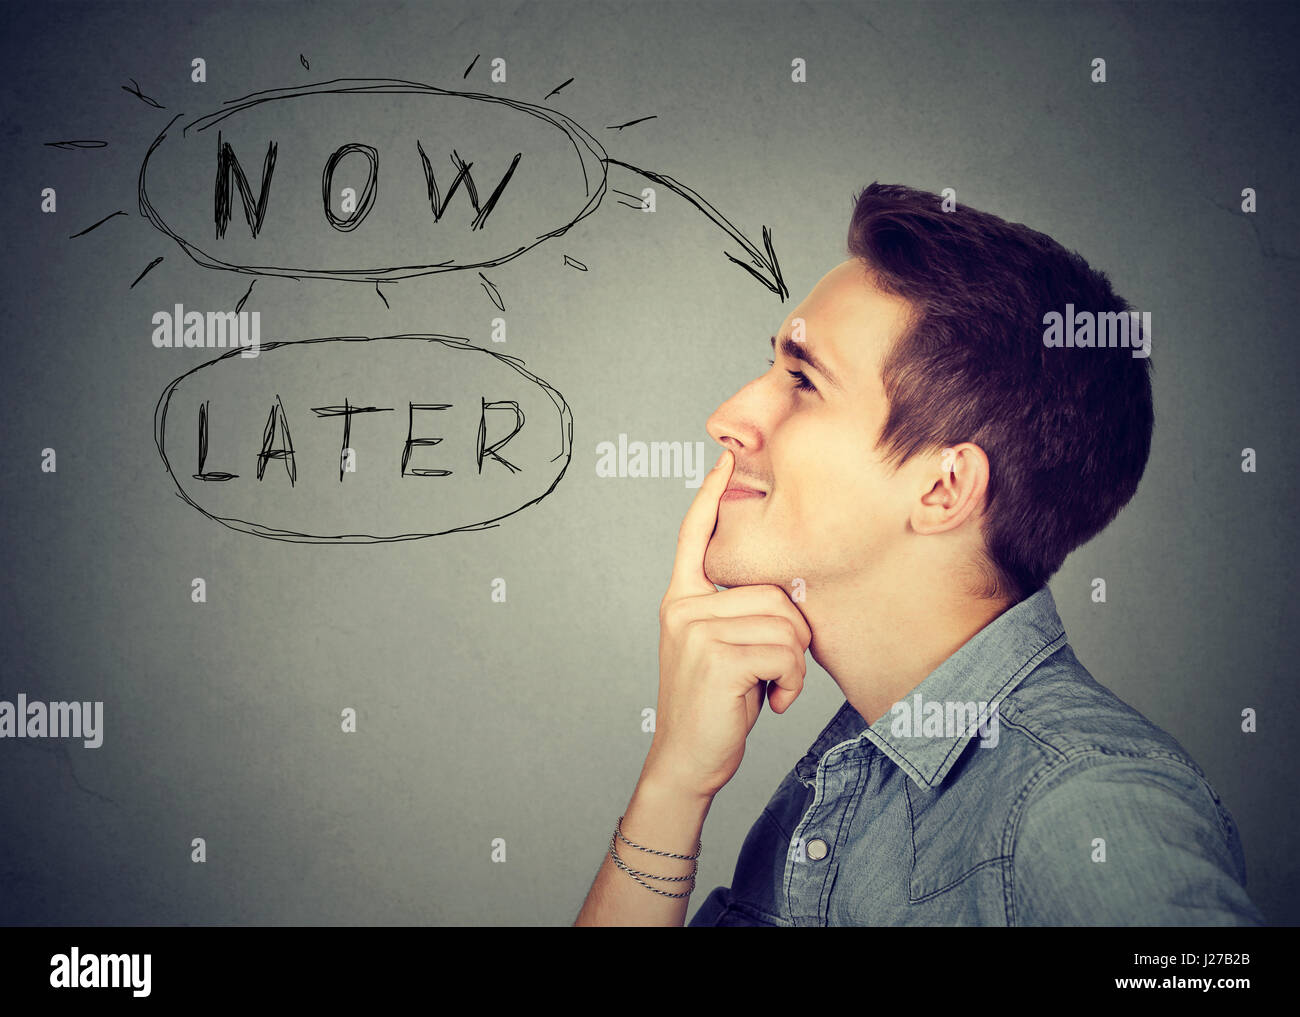 Now or later. Side profile happy man thinking looking up making up his mind isolated on gray wall background. Human - Stock Image